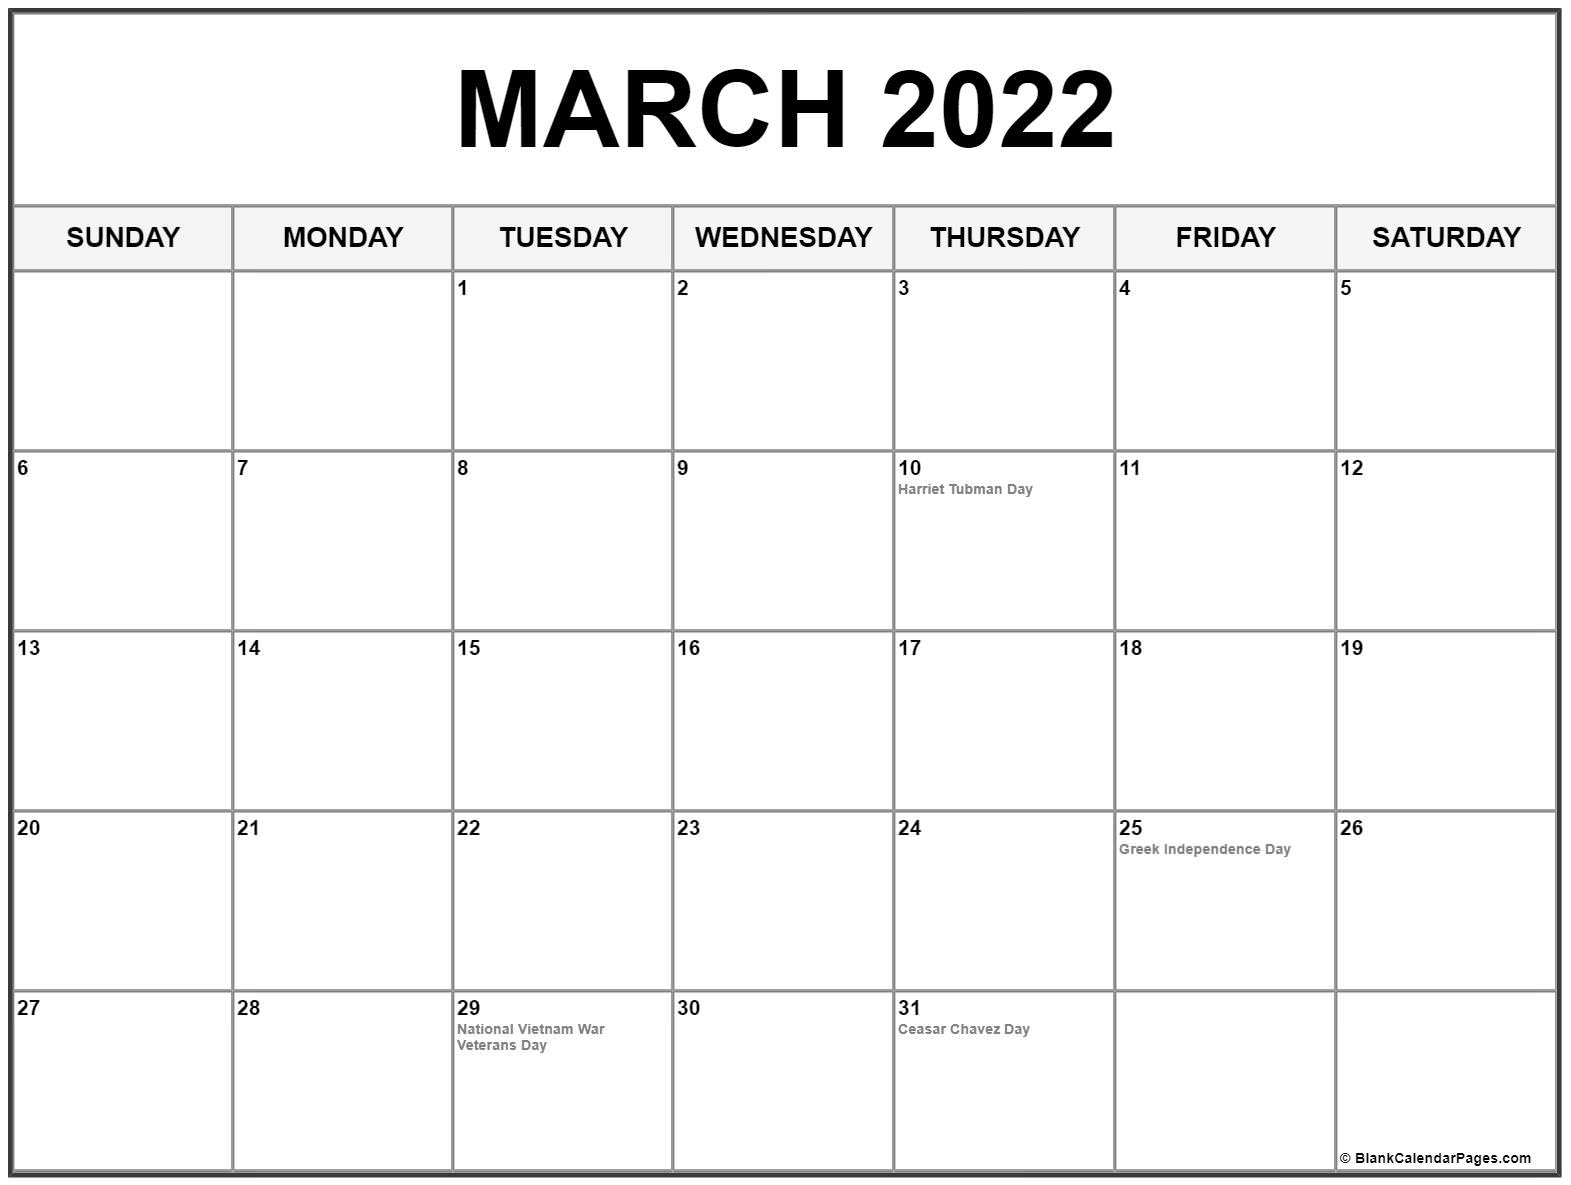 March 2022 calendar with holidays